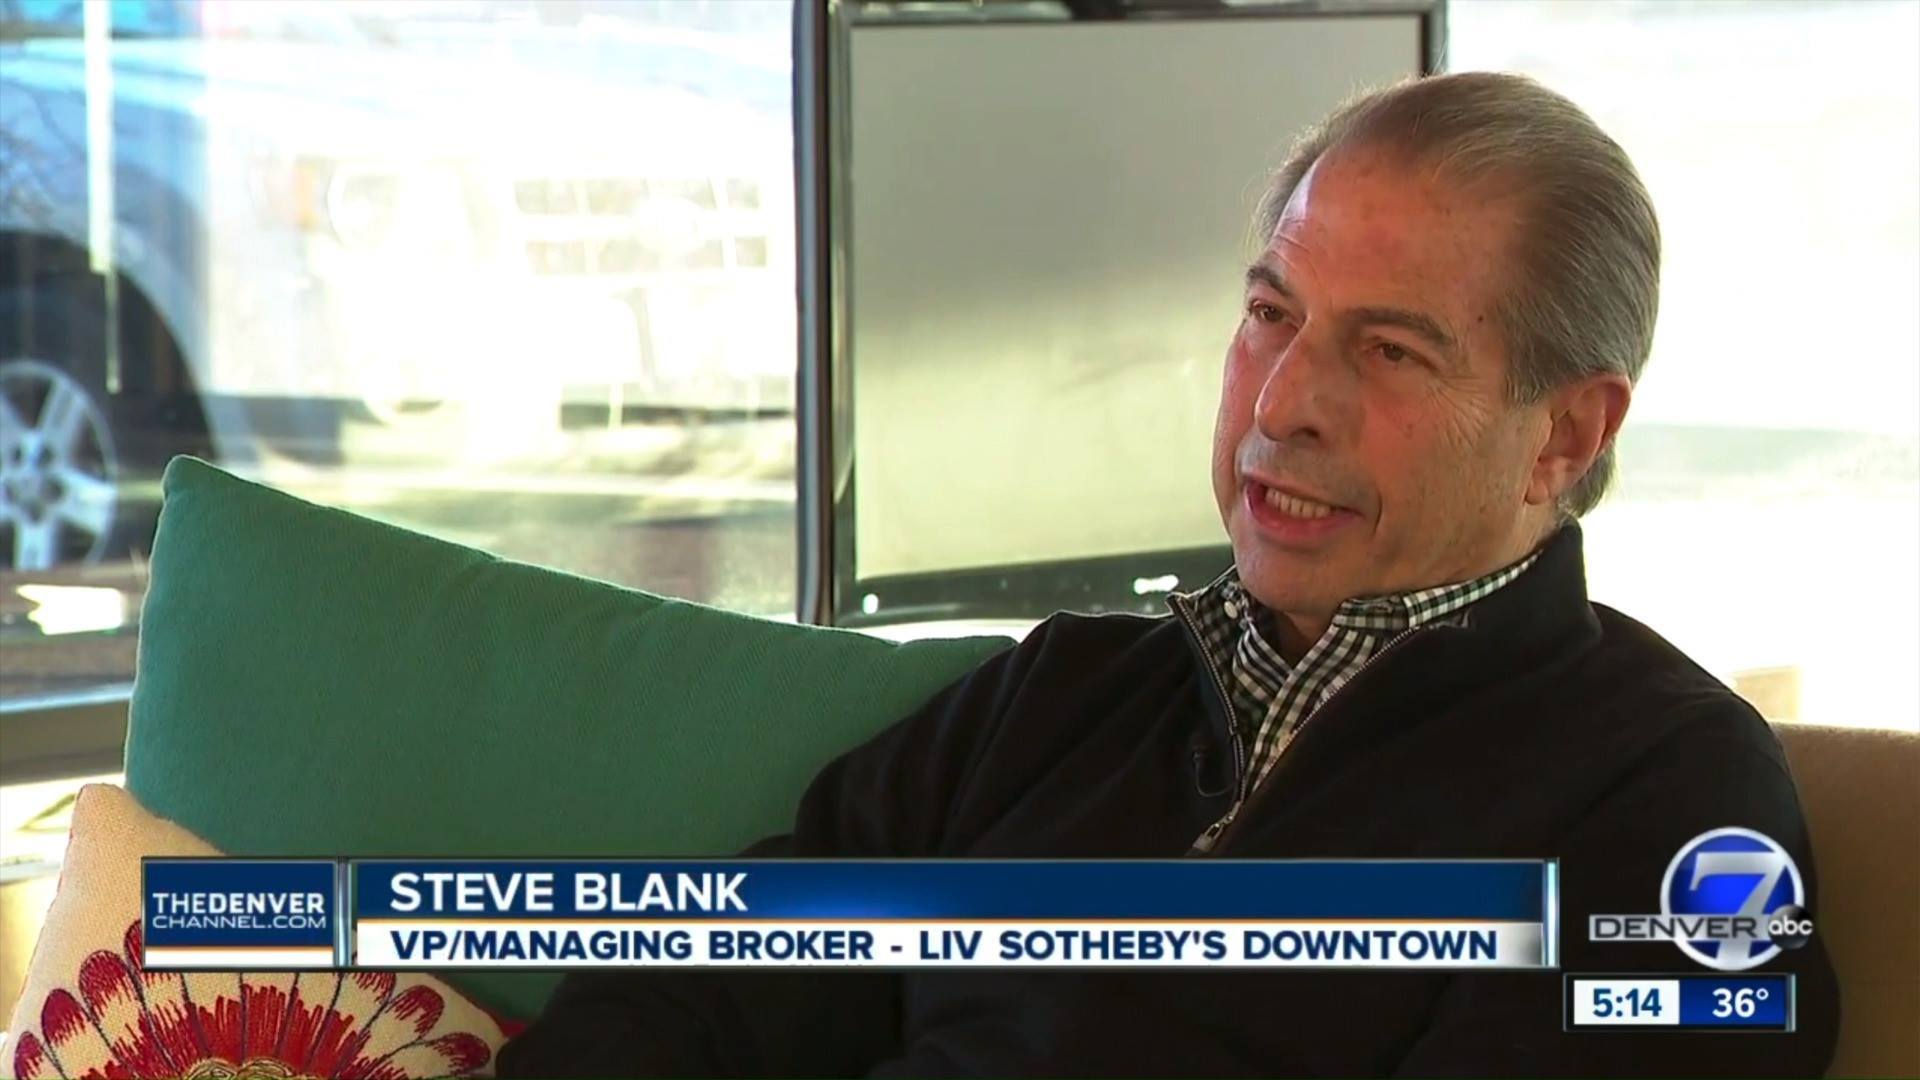 Steve Blank interviewed by Denver 7 - Listen now to Steve Blank, Vice President and Downtown Managing Broker, as he discusses Zillow entering the home flipping business and why buyers and sellers should get a second opinion.Watch the interview here